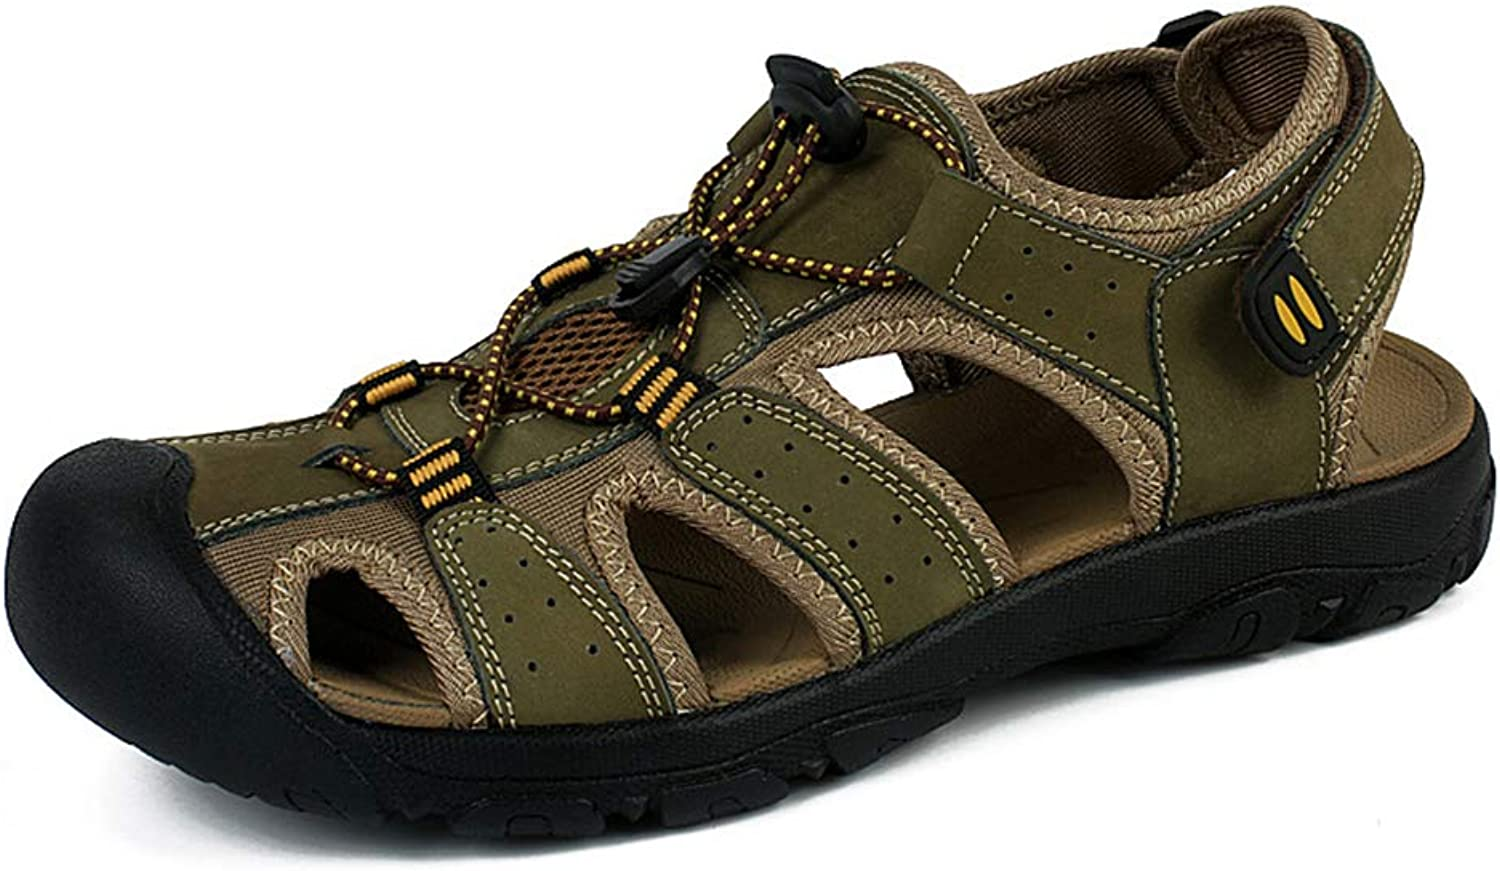 Men Sport Sandals for Summer Outdoor Athletic Slides Leather Fisherman Beach shoes Traveling,Armygreen,8.5MUS